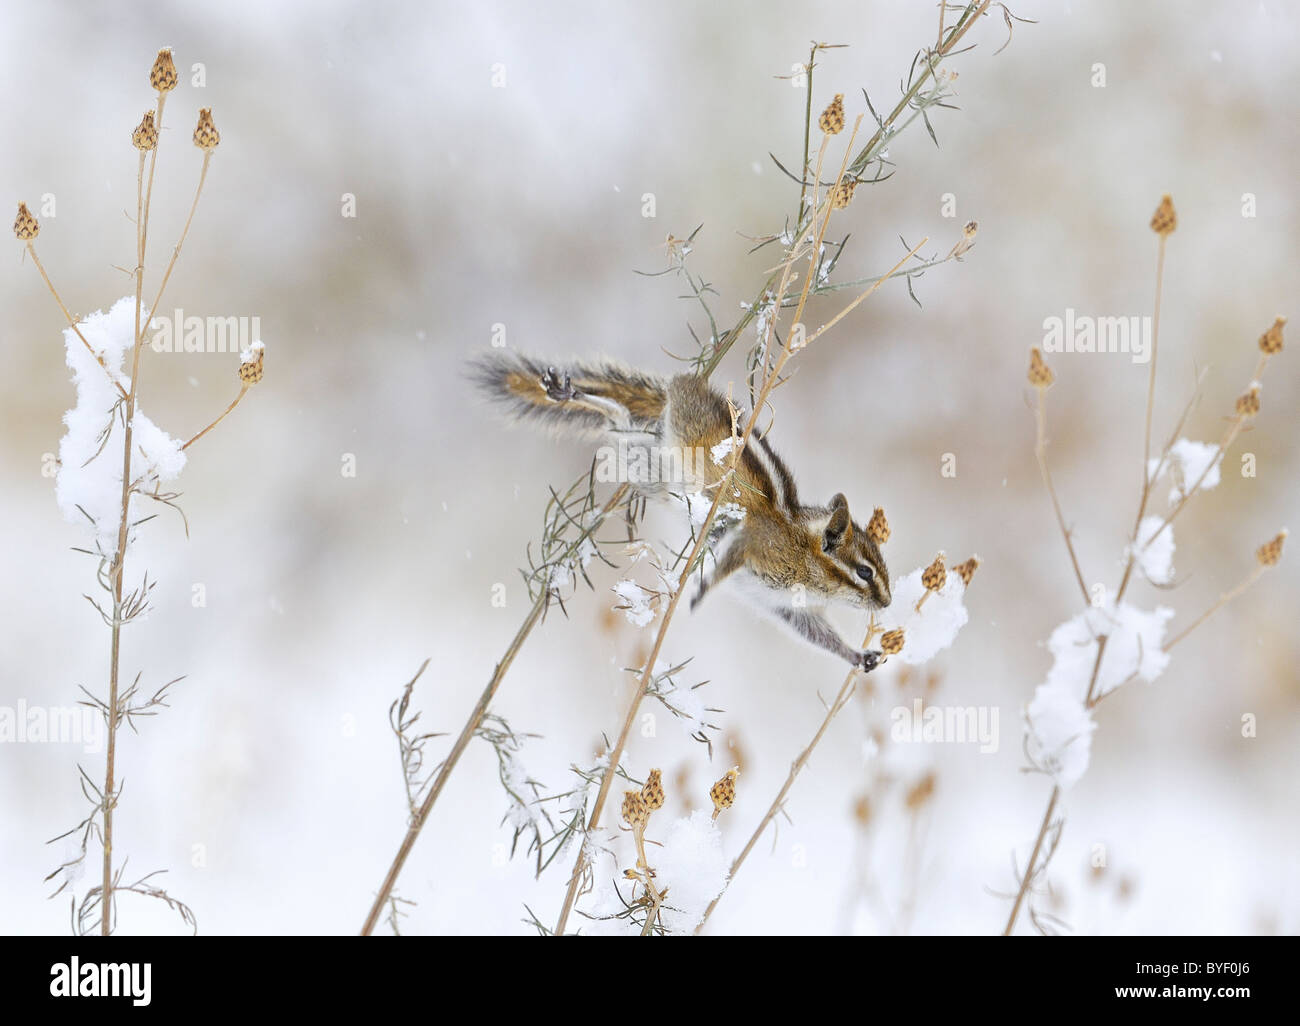 Least Chipmunk feeding on seeds in low bushes during snowstorm. - Stock Image